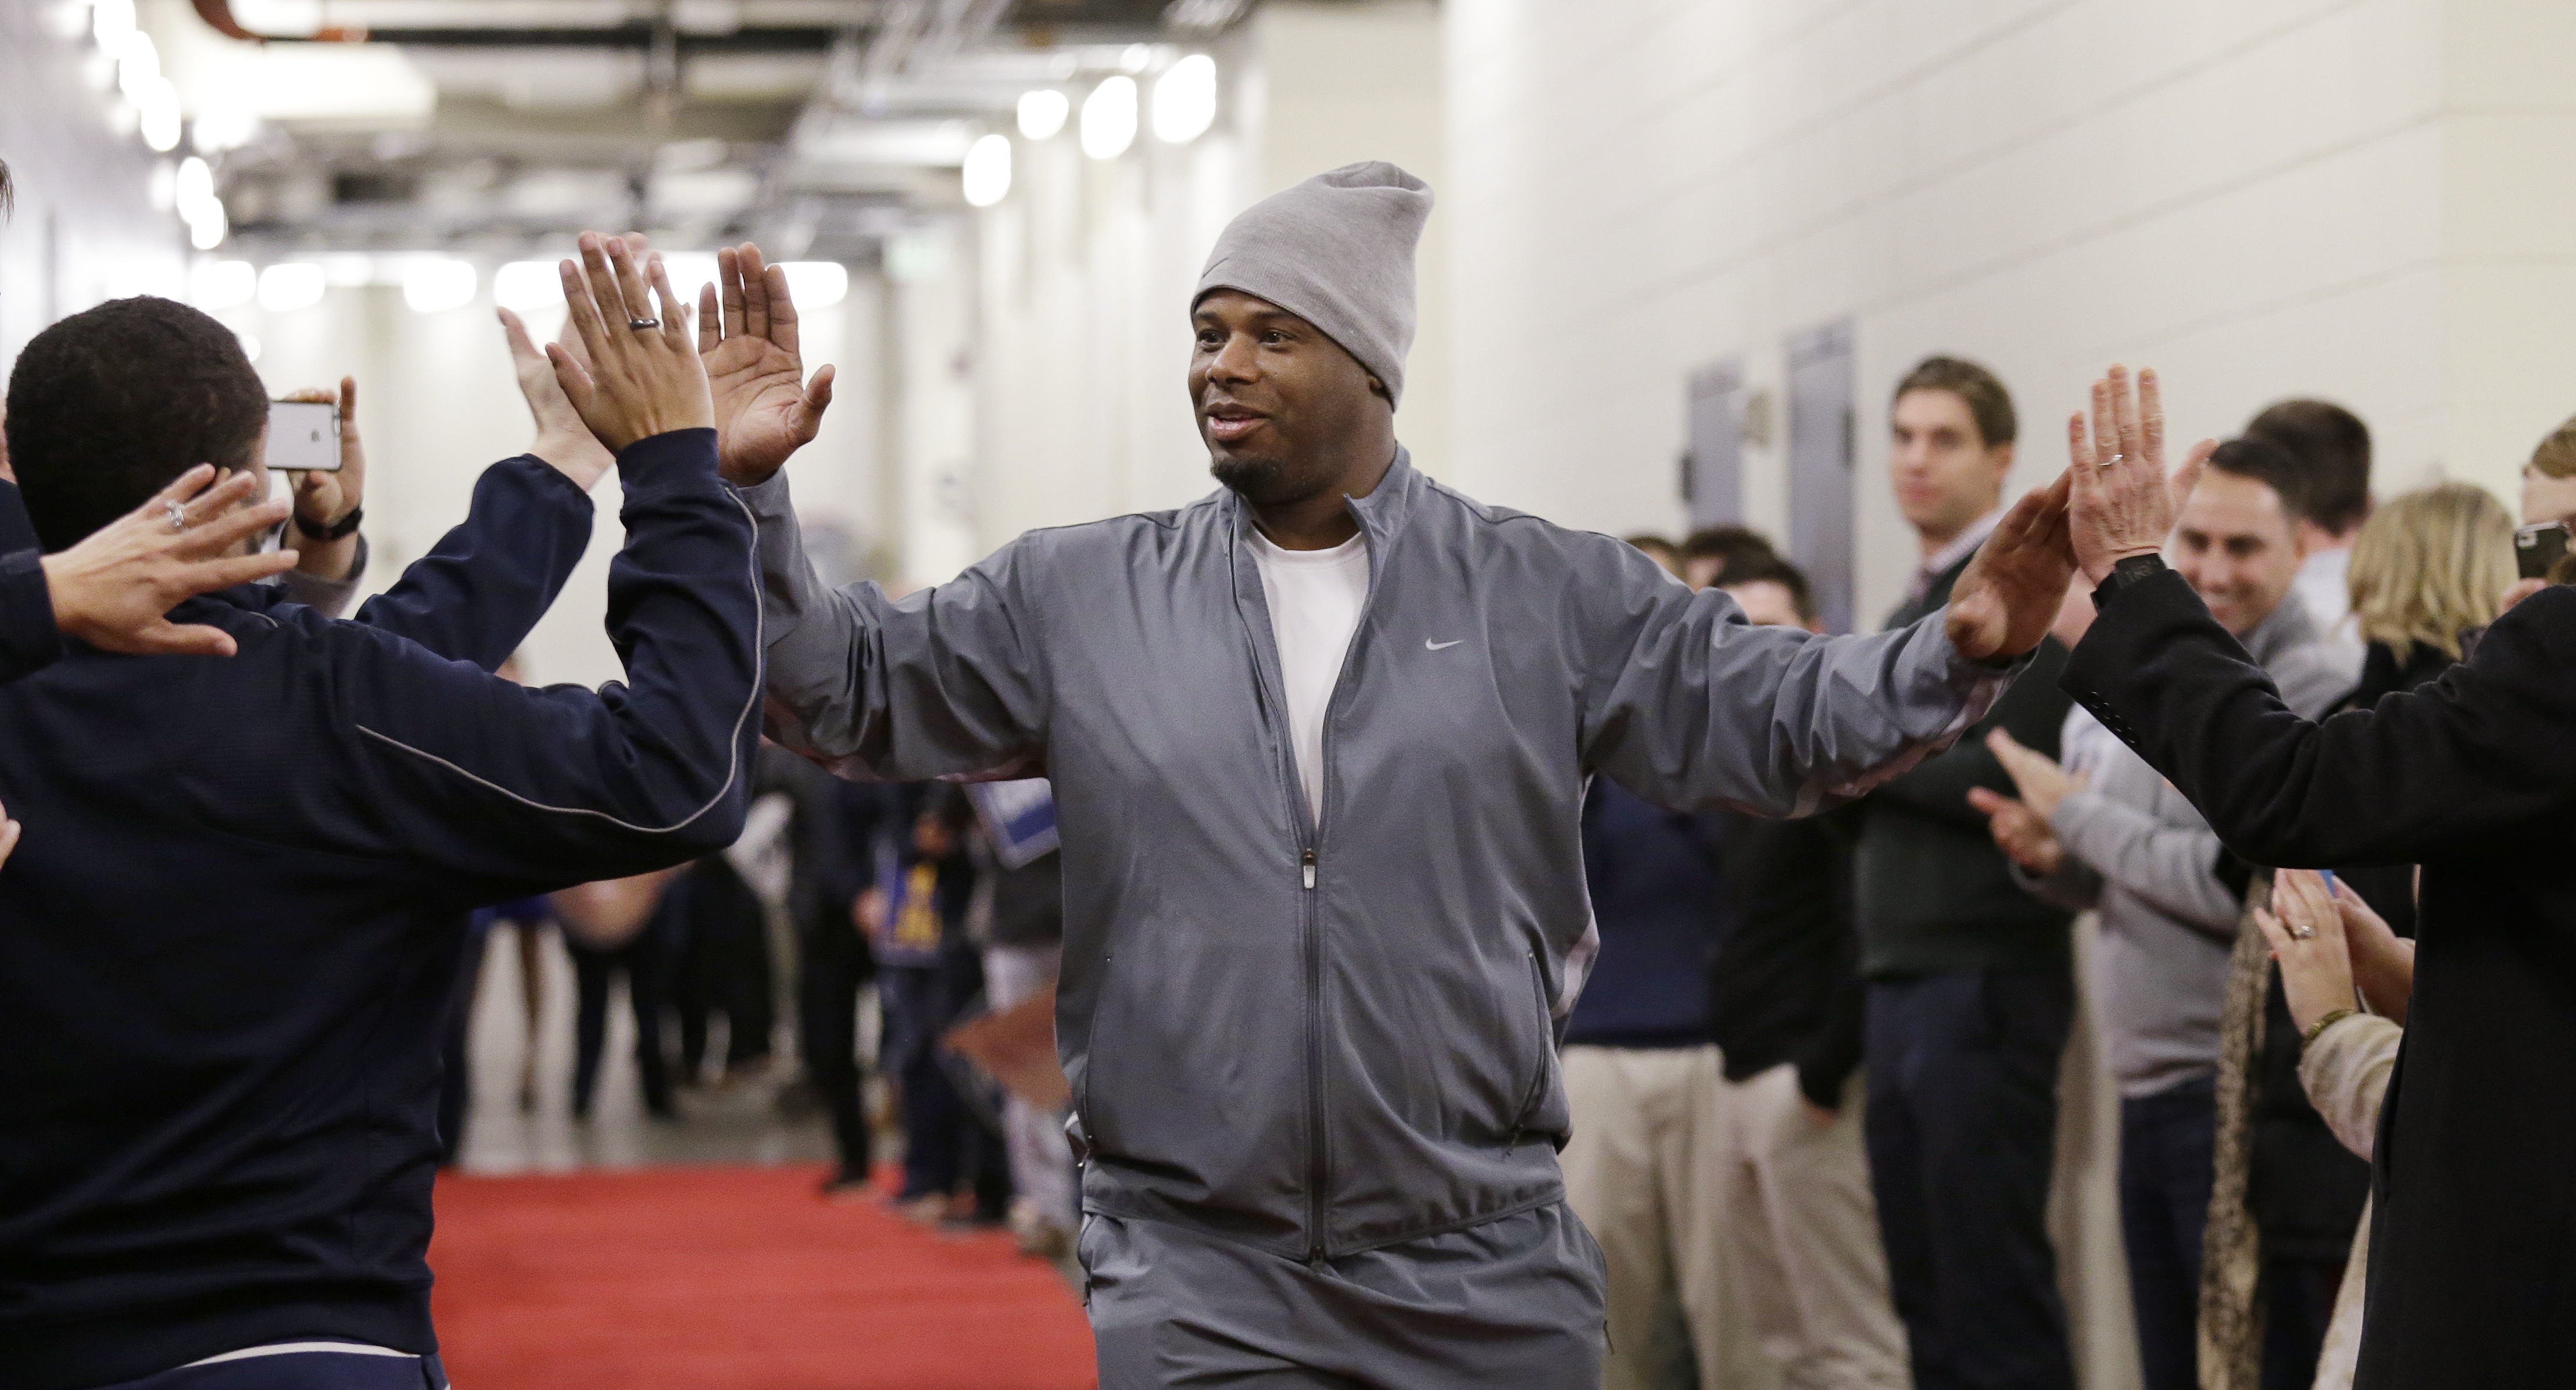 Former Seattle Mariner Ken Griffey Jr. is greeted by team staff members on his arrival before a news conference Friday, Jan. 8, 2016, in Seattle. Griffey's Hall of Fame whirlwind came back to where it all started, when he spoke at Safeco Field, the stadiu